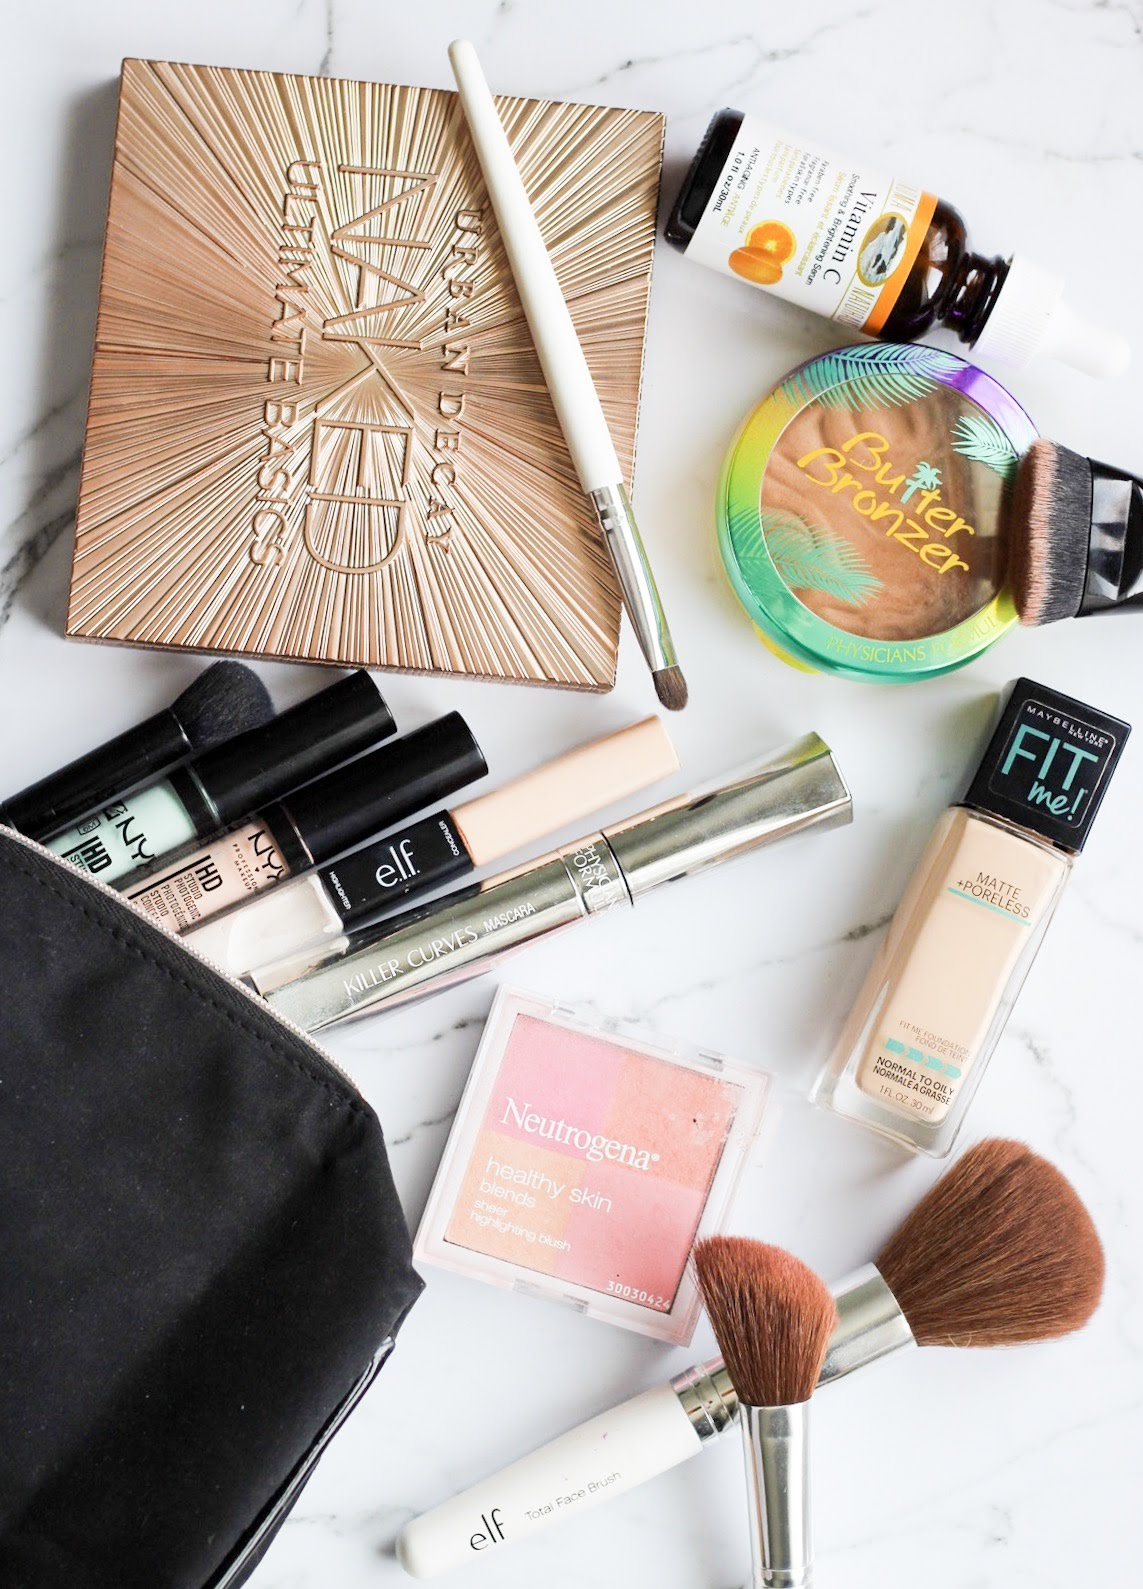 Makeup Essentials Must Haves From Makeup Artists Part 1: Everyday Makeup Essentials